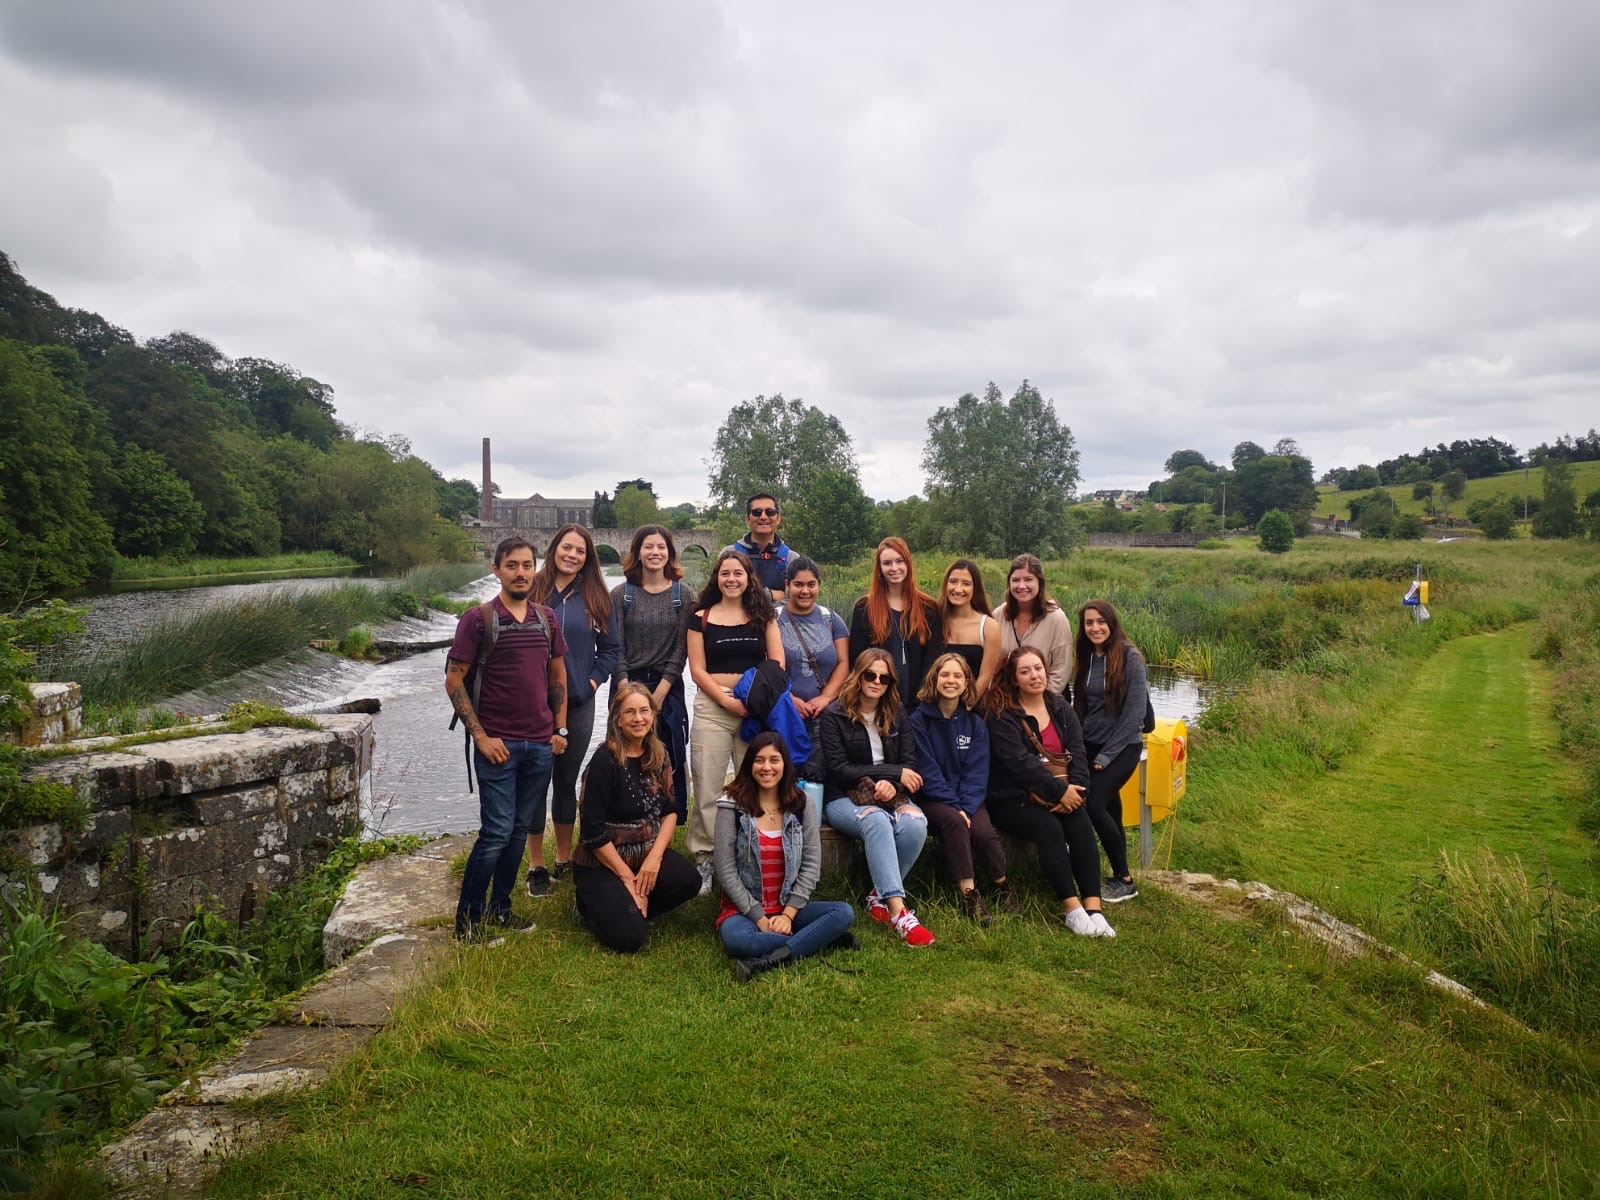 Students stand in a group in Ireland on green grass with a castle behind them